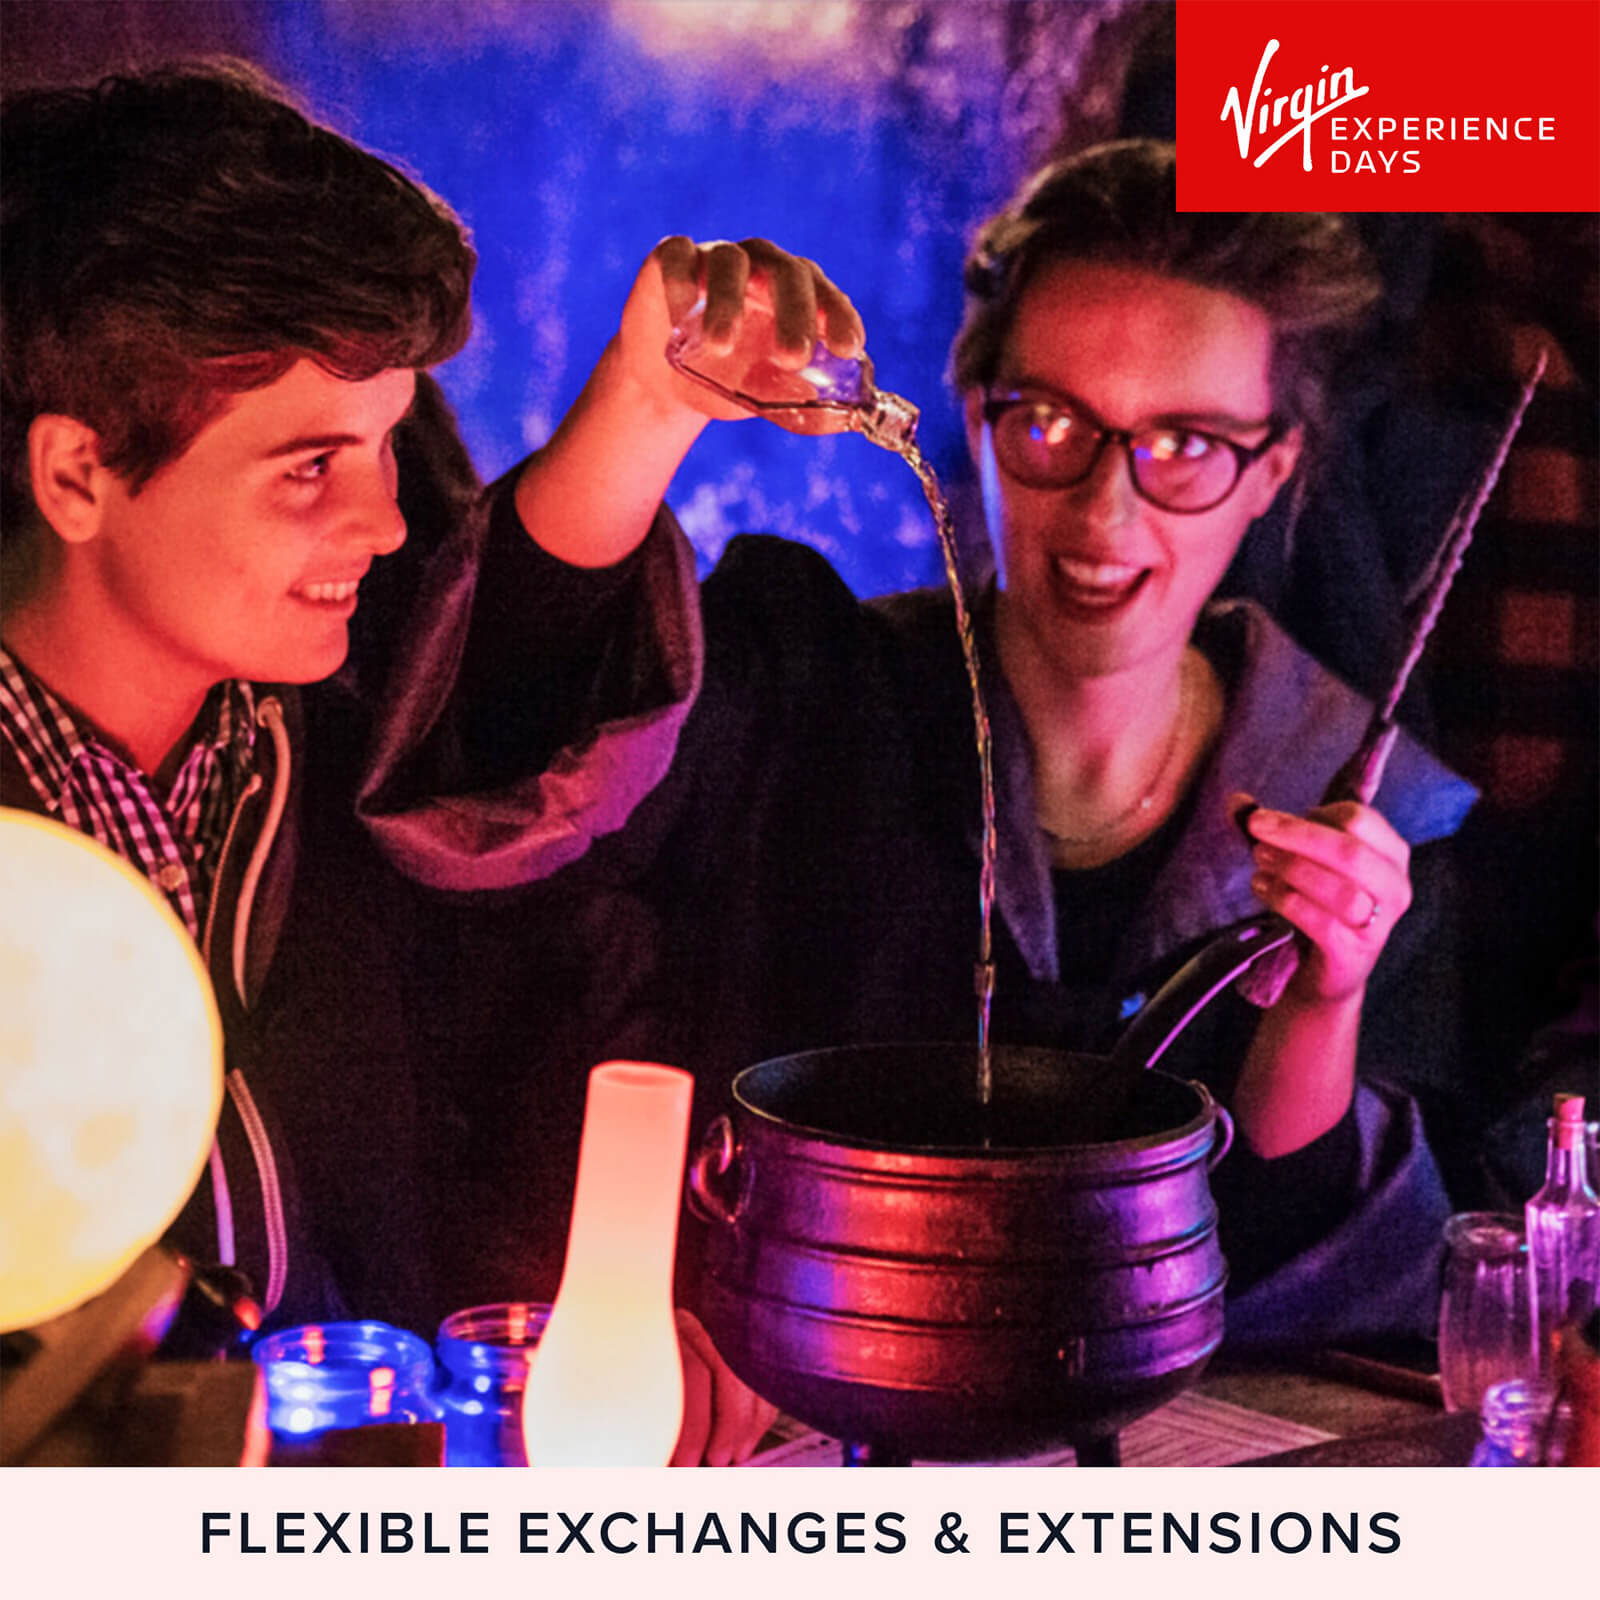 Image of Immersive Magical Cocktail Experience for Two at The Cauldron, London